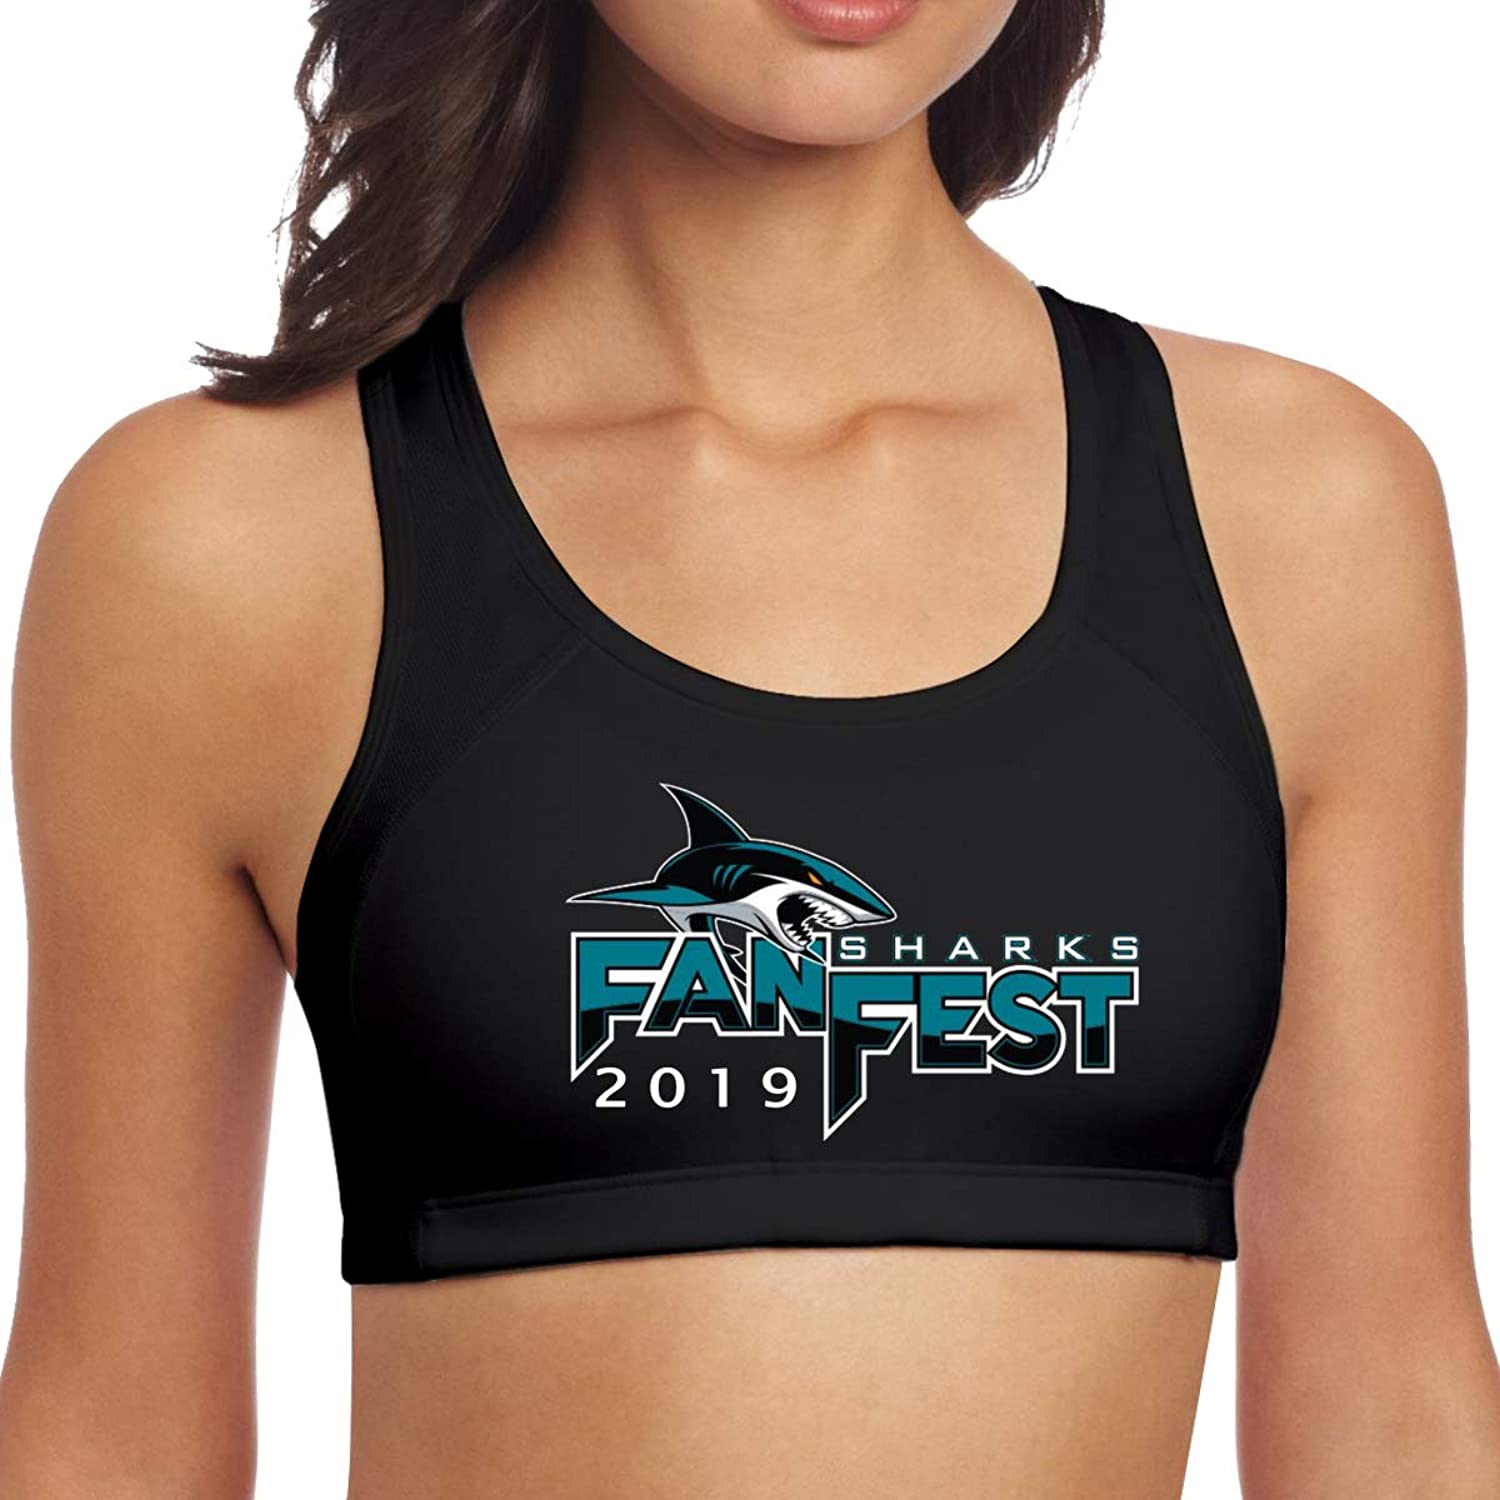 Women's 2019 Jose Sharks Yoga Tank Tops Sleeveless Activewear